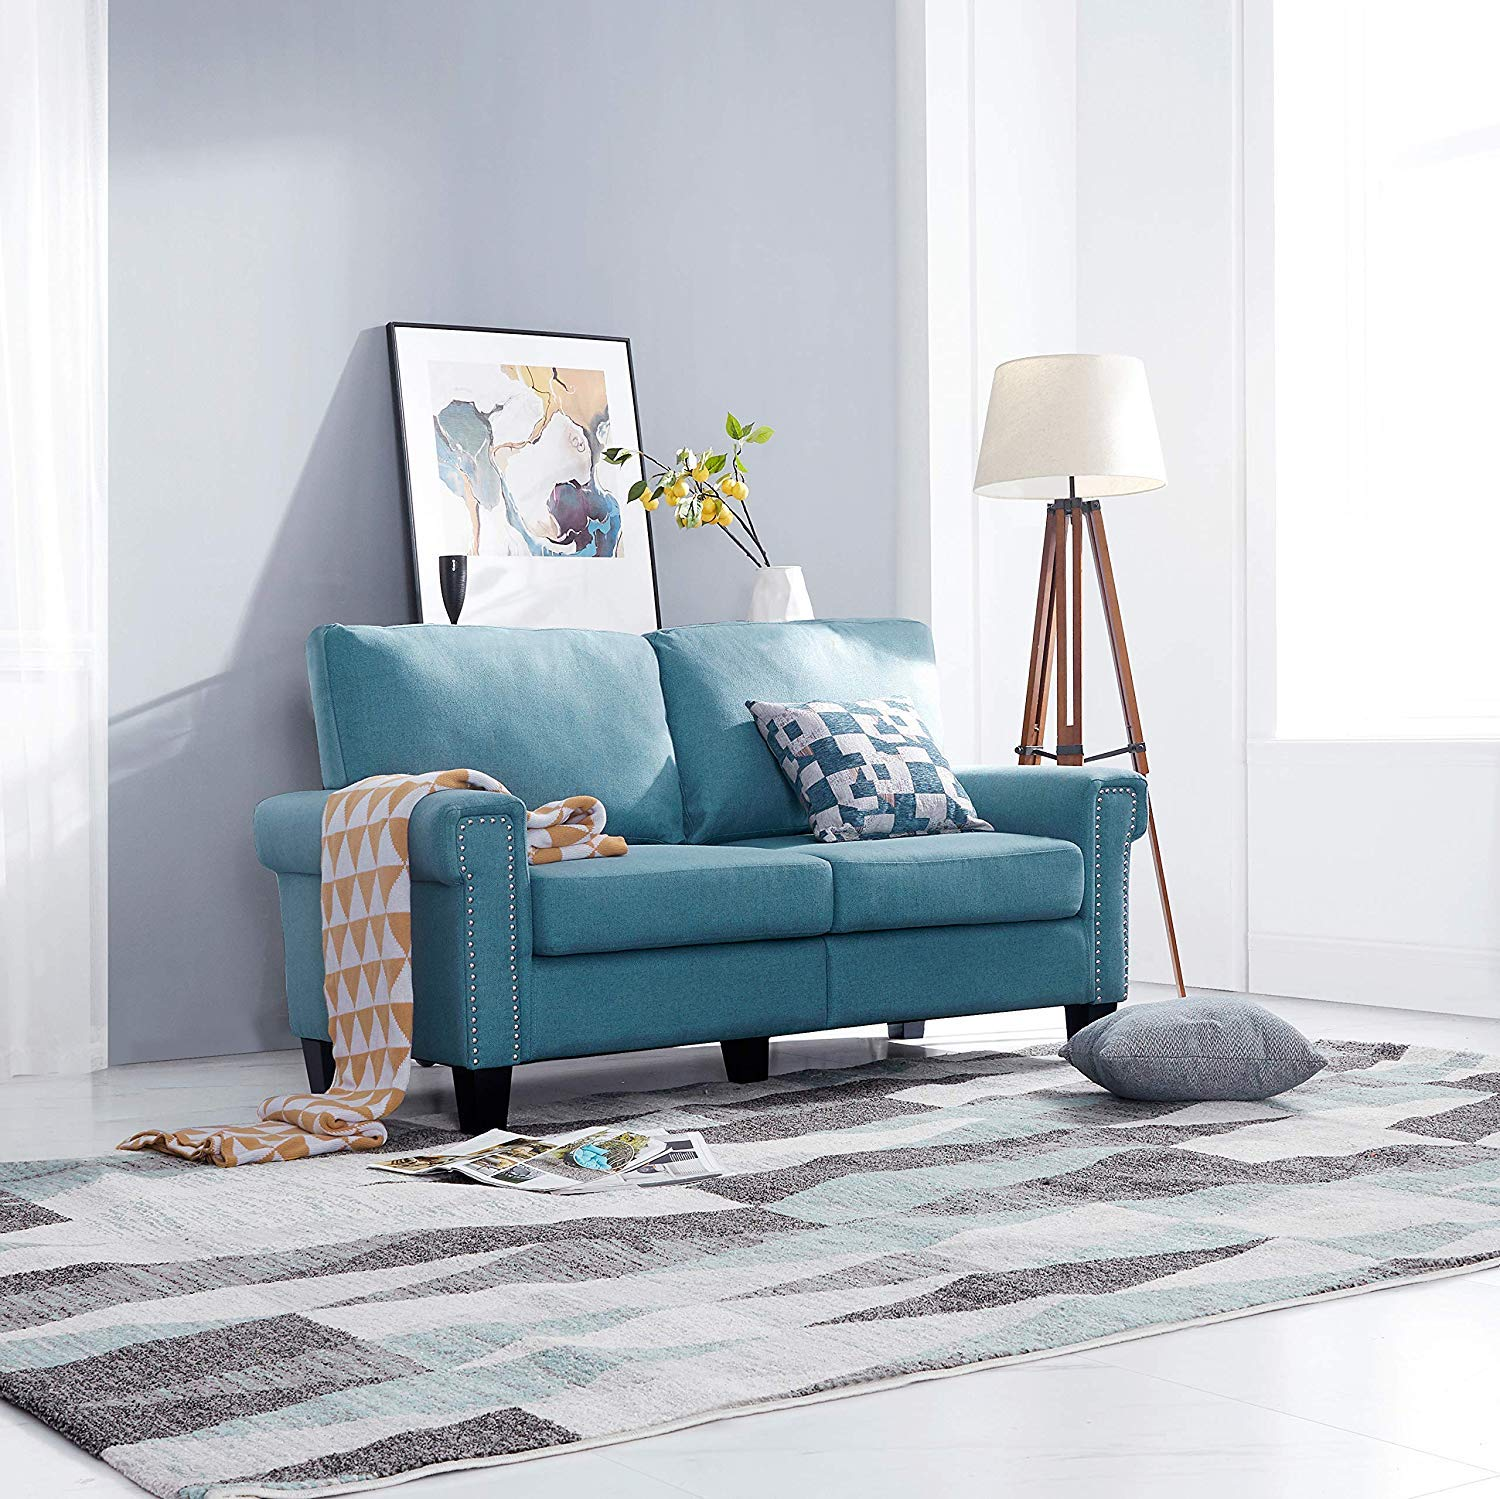 Blue Top Space Loveseat Couch Upholstered Modern 2 Seat Sofa Simple Style Arm Chair Linen Fabric Furniture Living Room Living Room Sets Kolenik Home Kitchen